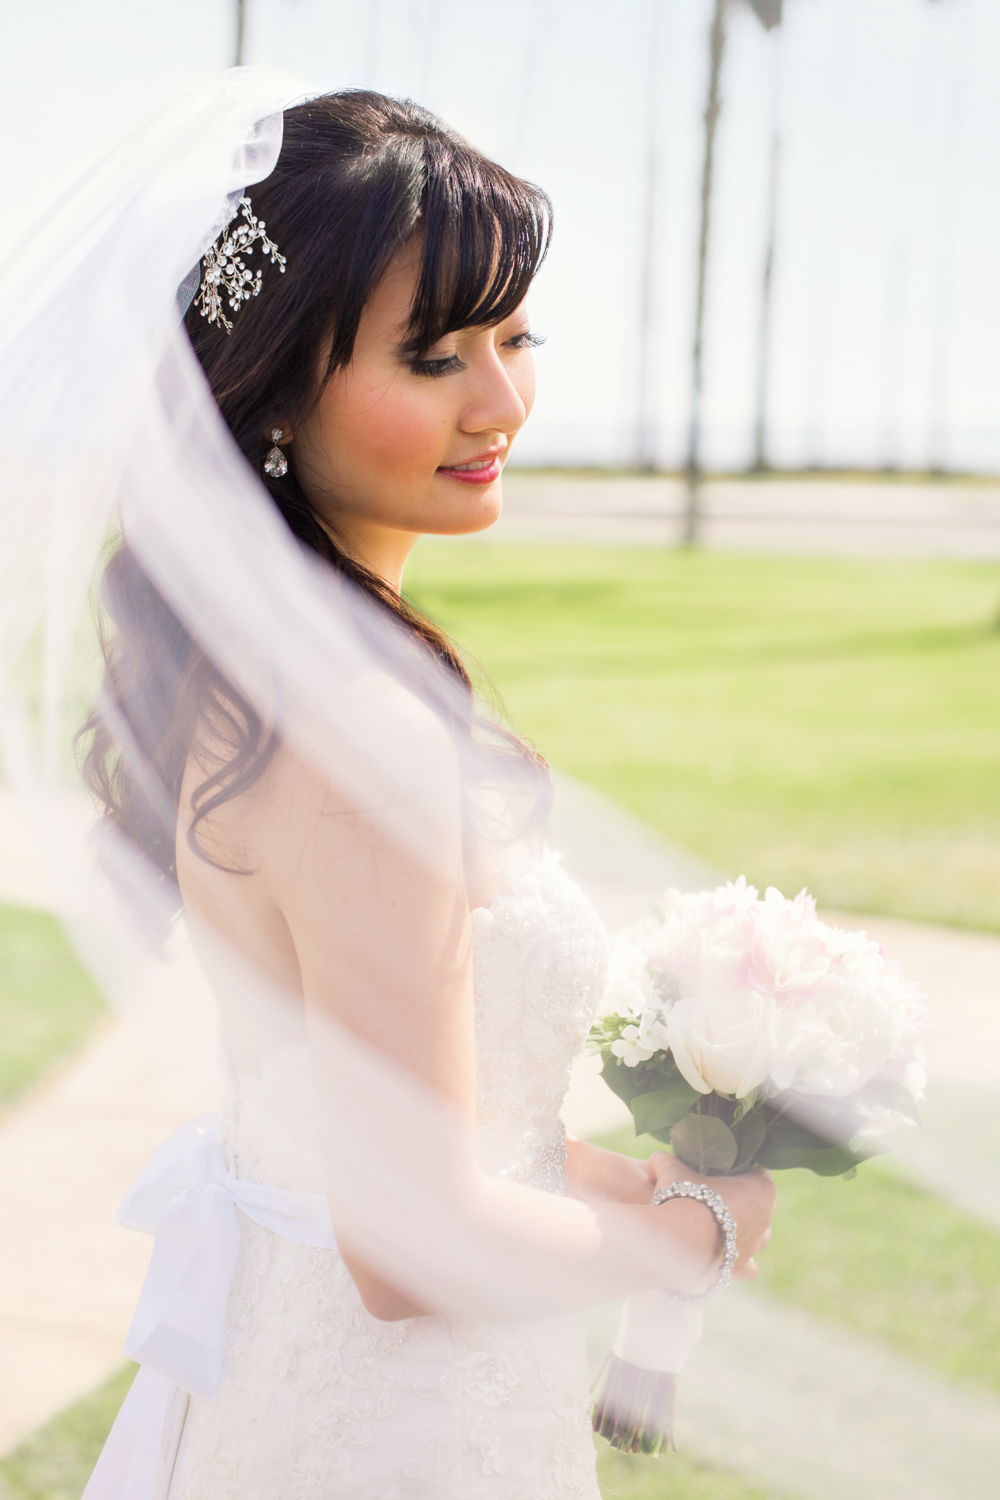 Bride portrait on the beach with veil and rose bouquet.